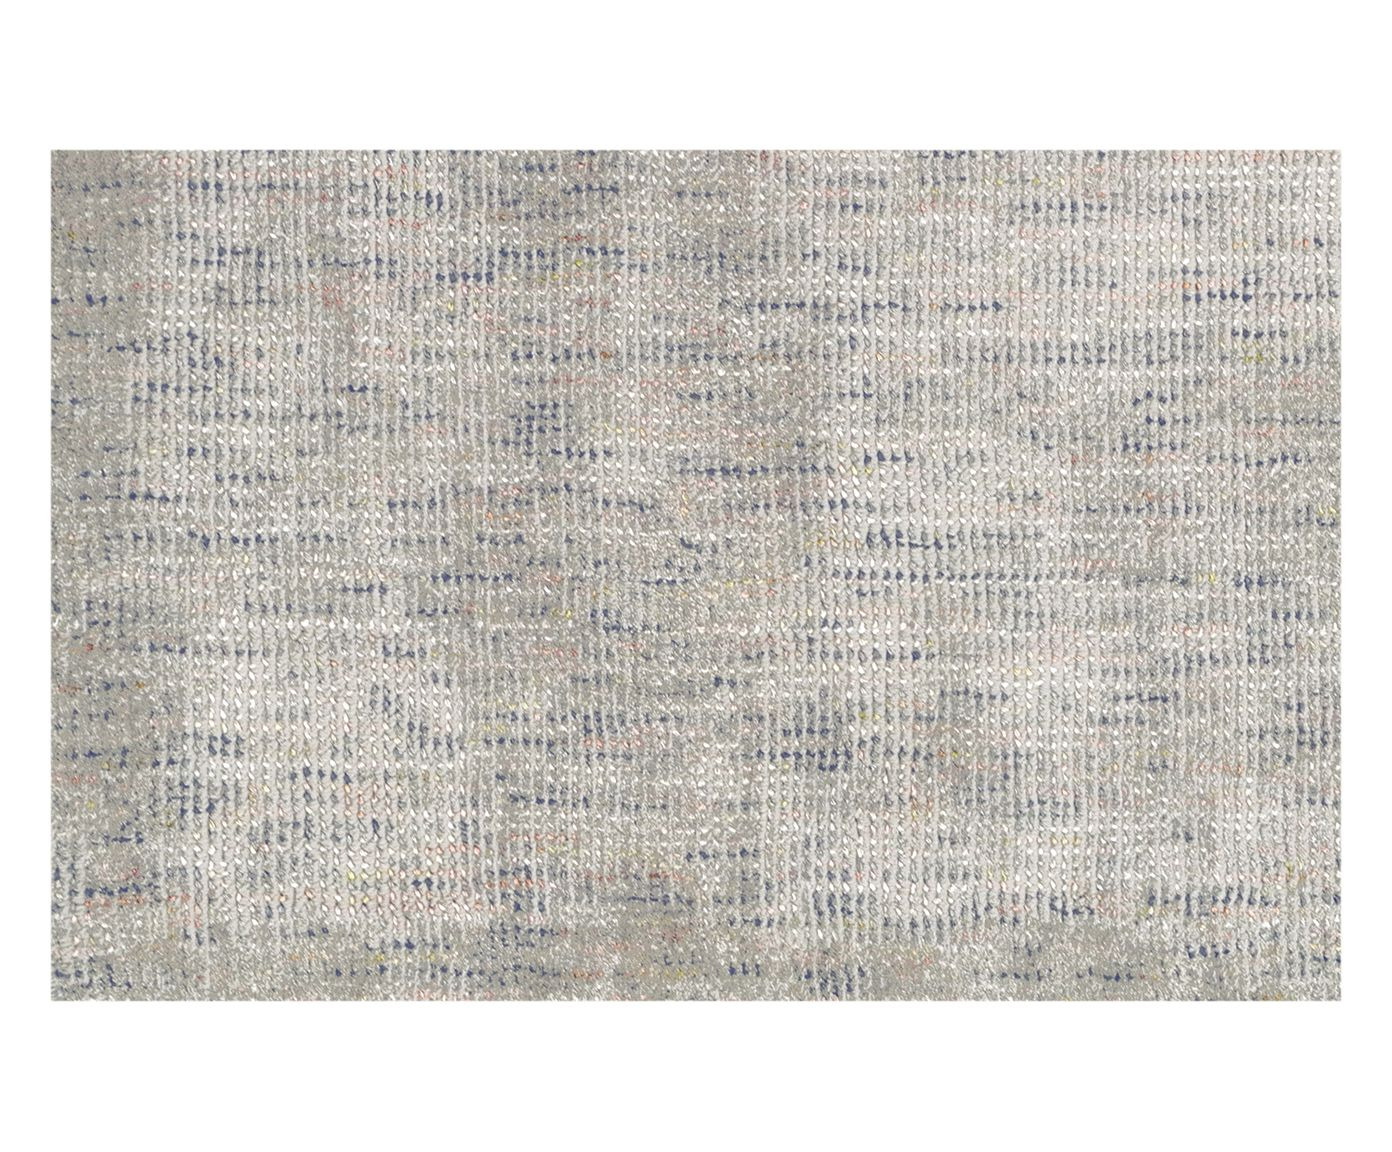 Tapete Indiano Seaburry Giana Cinza - 200X250cm | Westwing.com.br